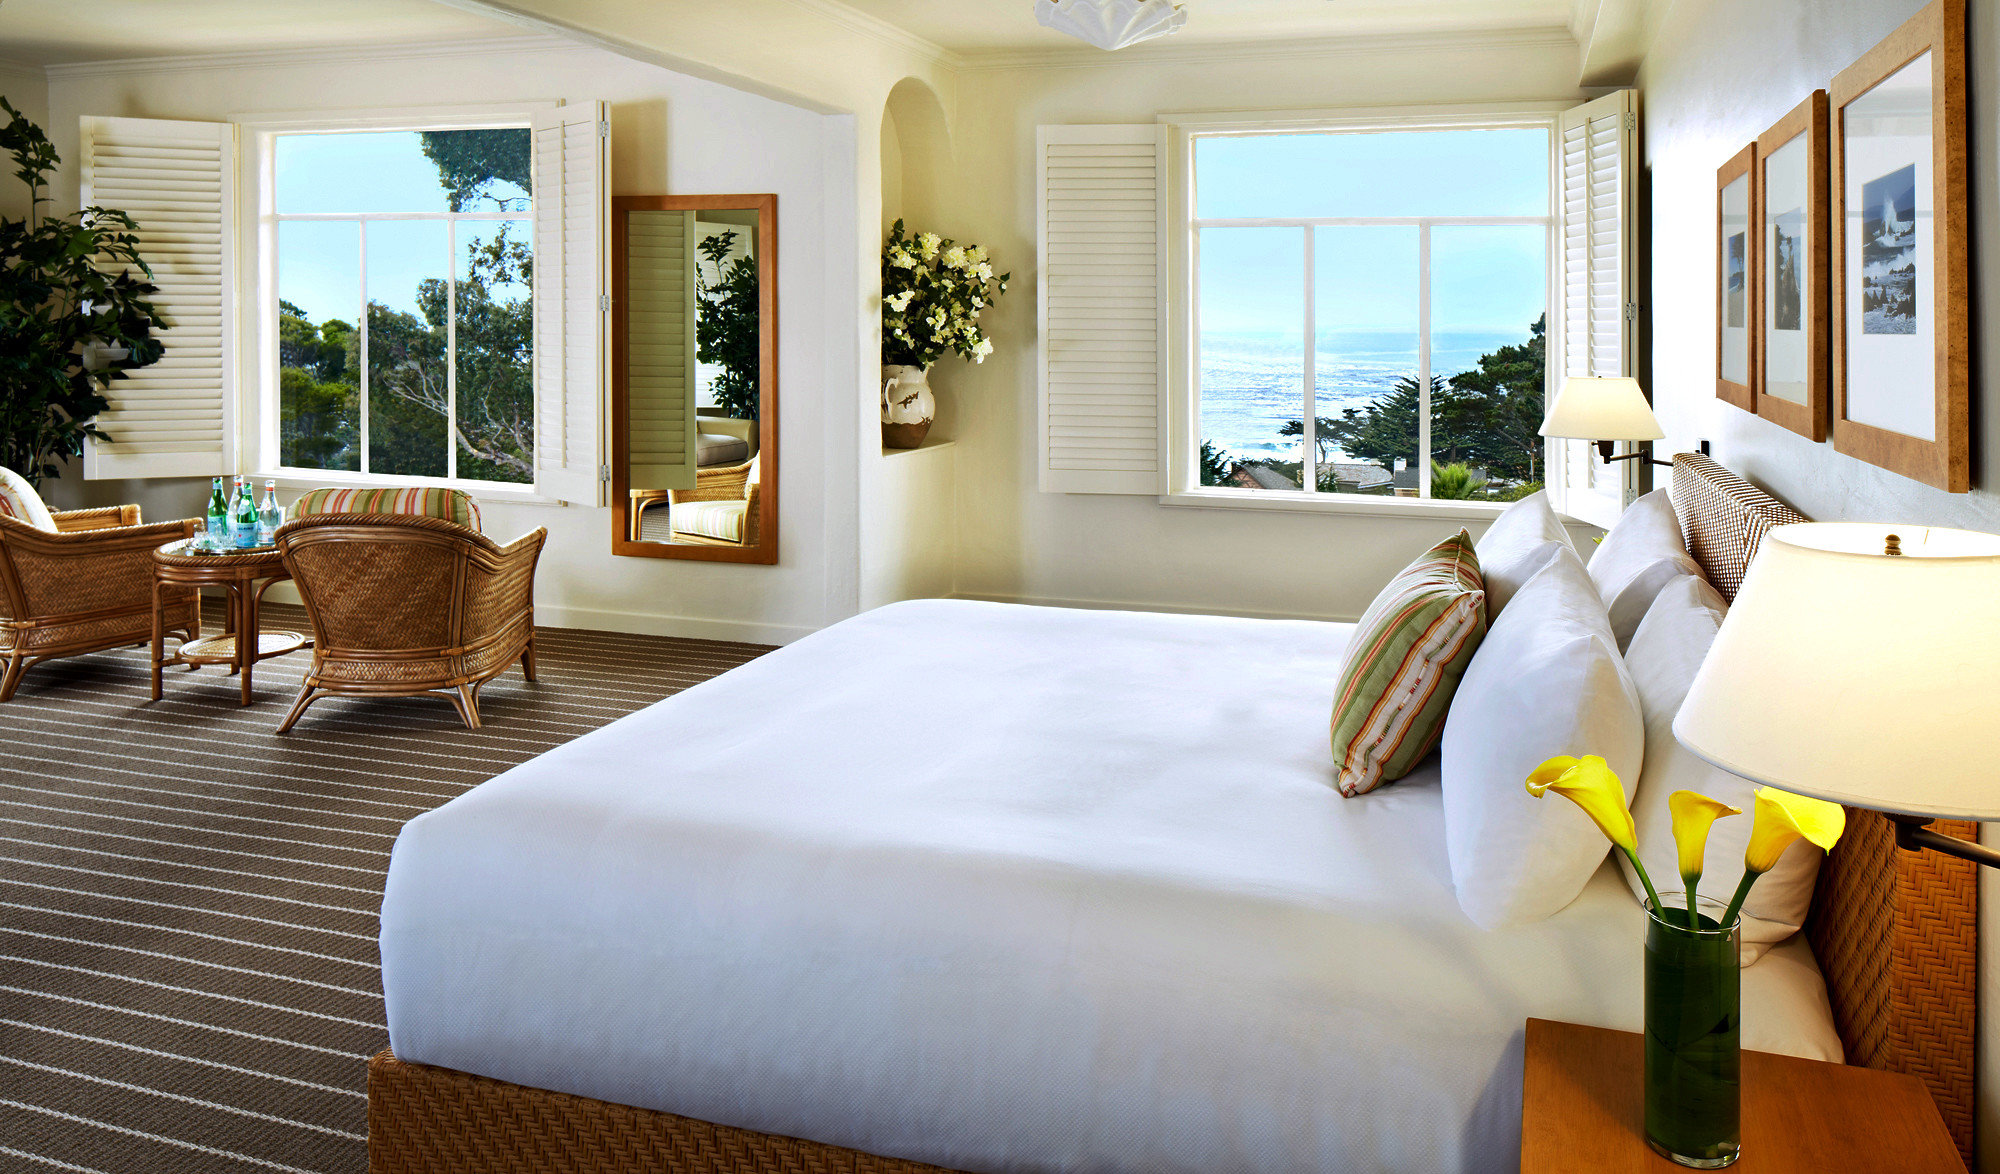 Bedroom Classic Resort Scenic views sofa property Suite home living room Villa cottage nice condominium